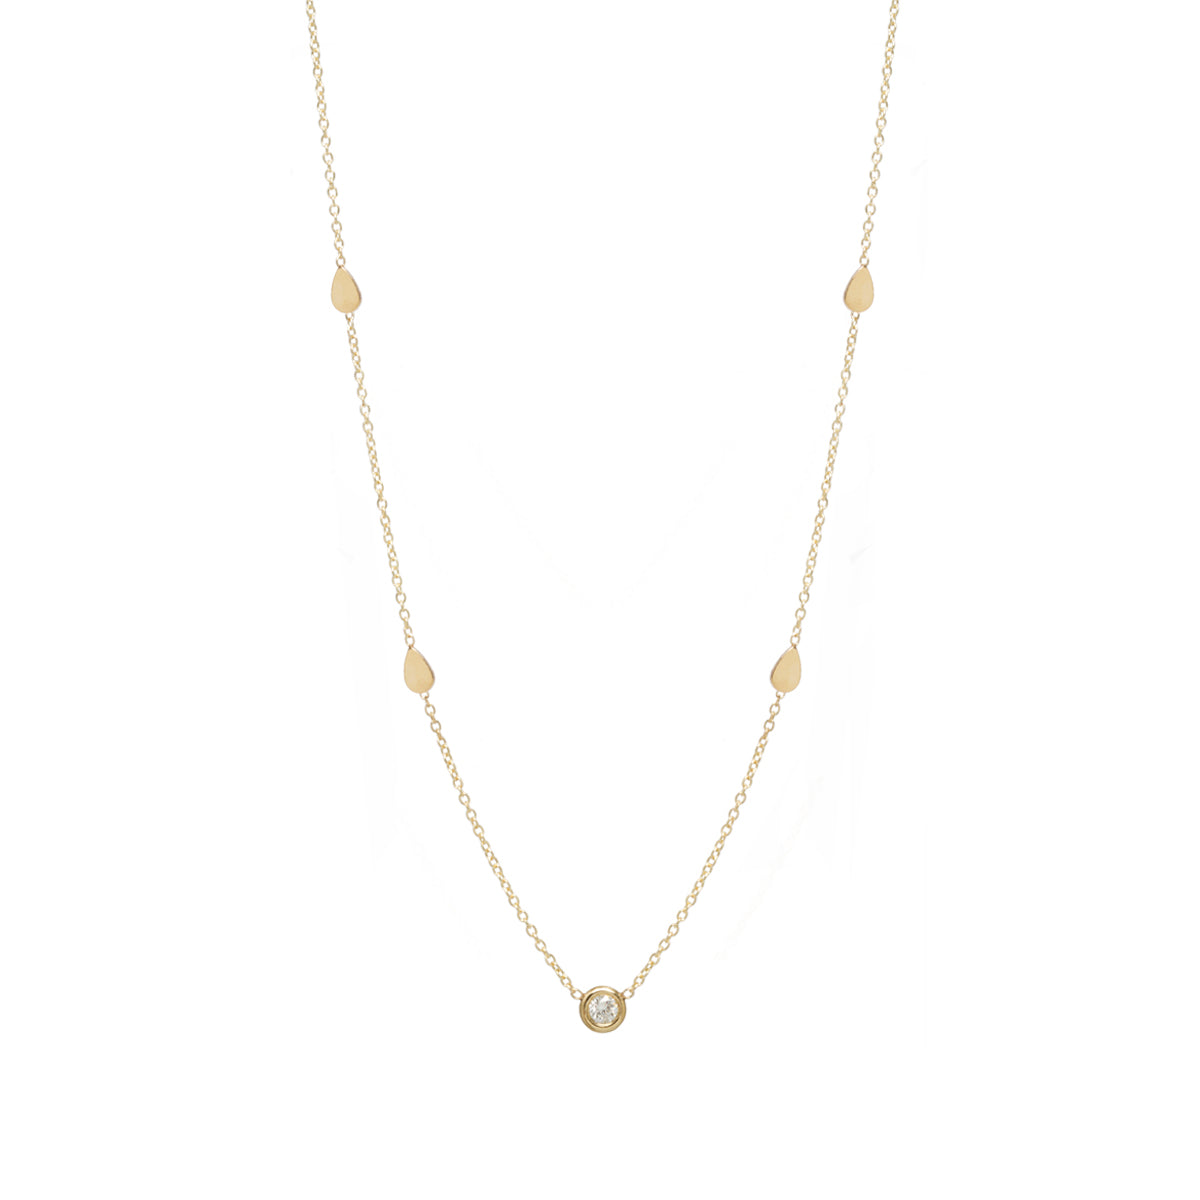 Zoe Chicco 14kt Gold Floating Diamond and Tear Necklace